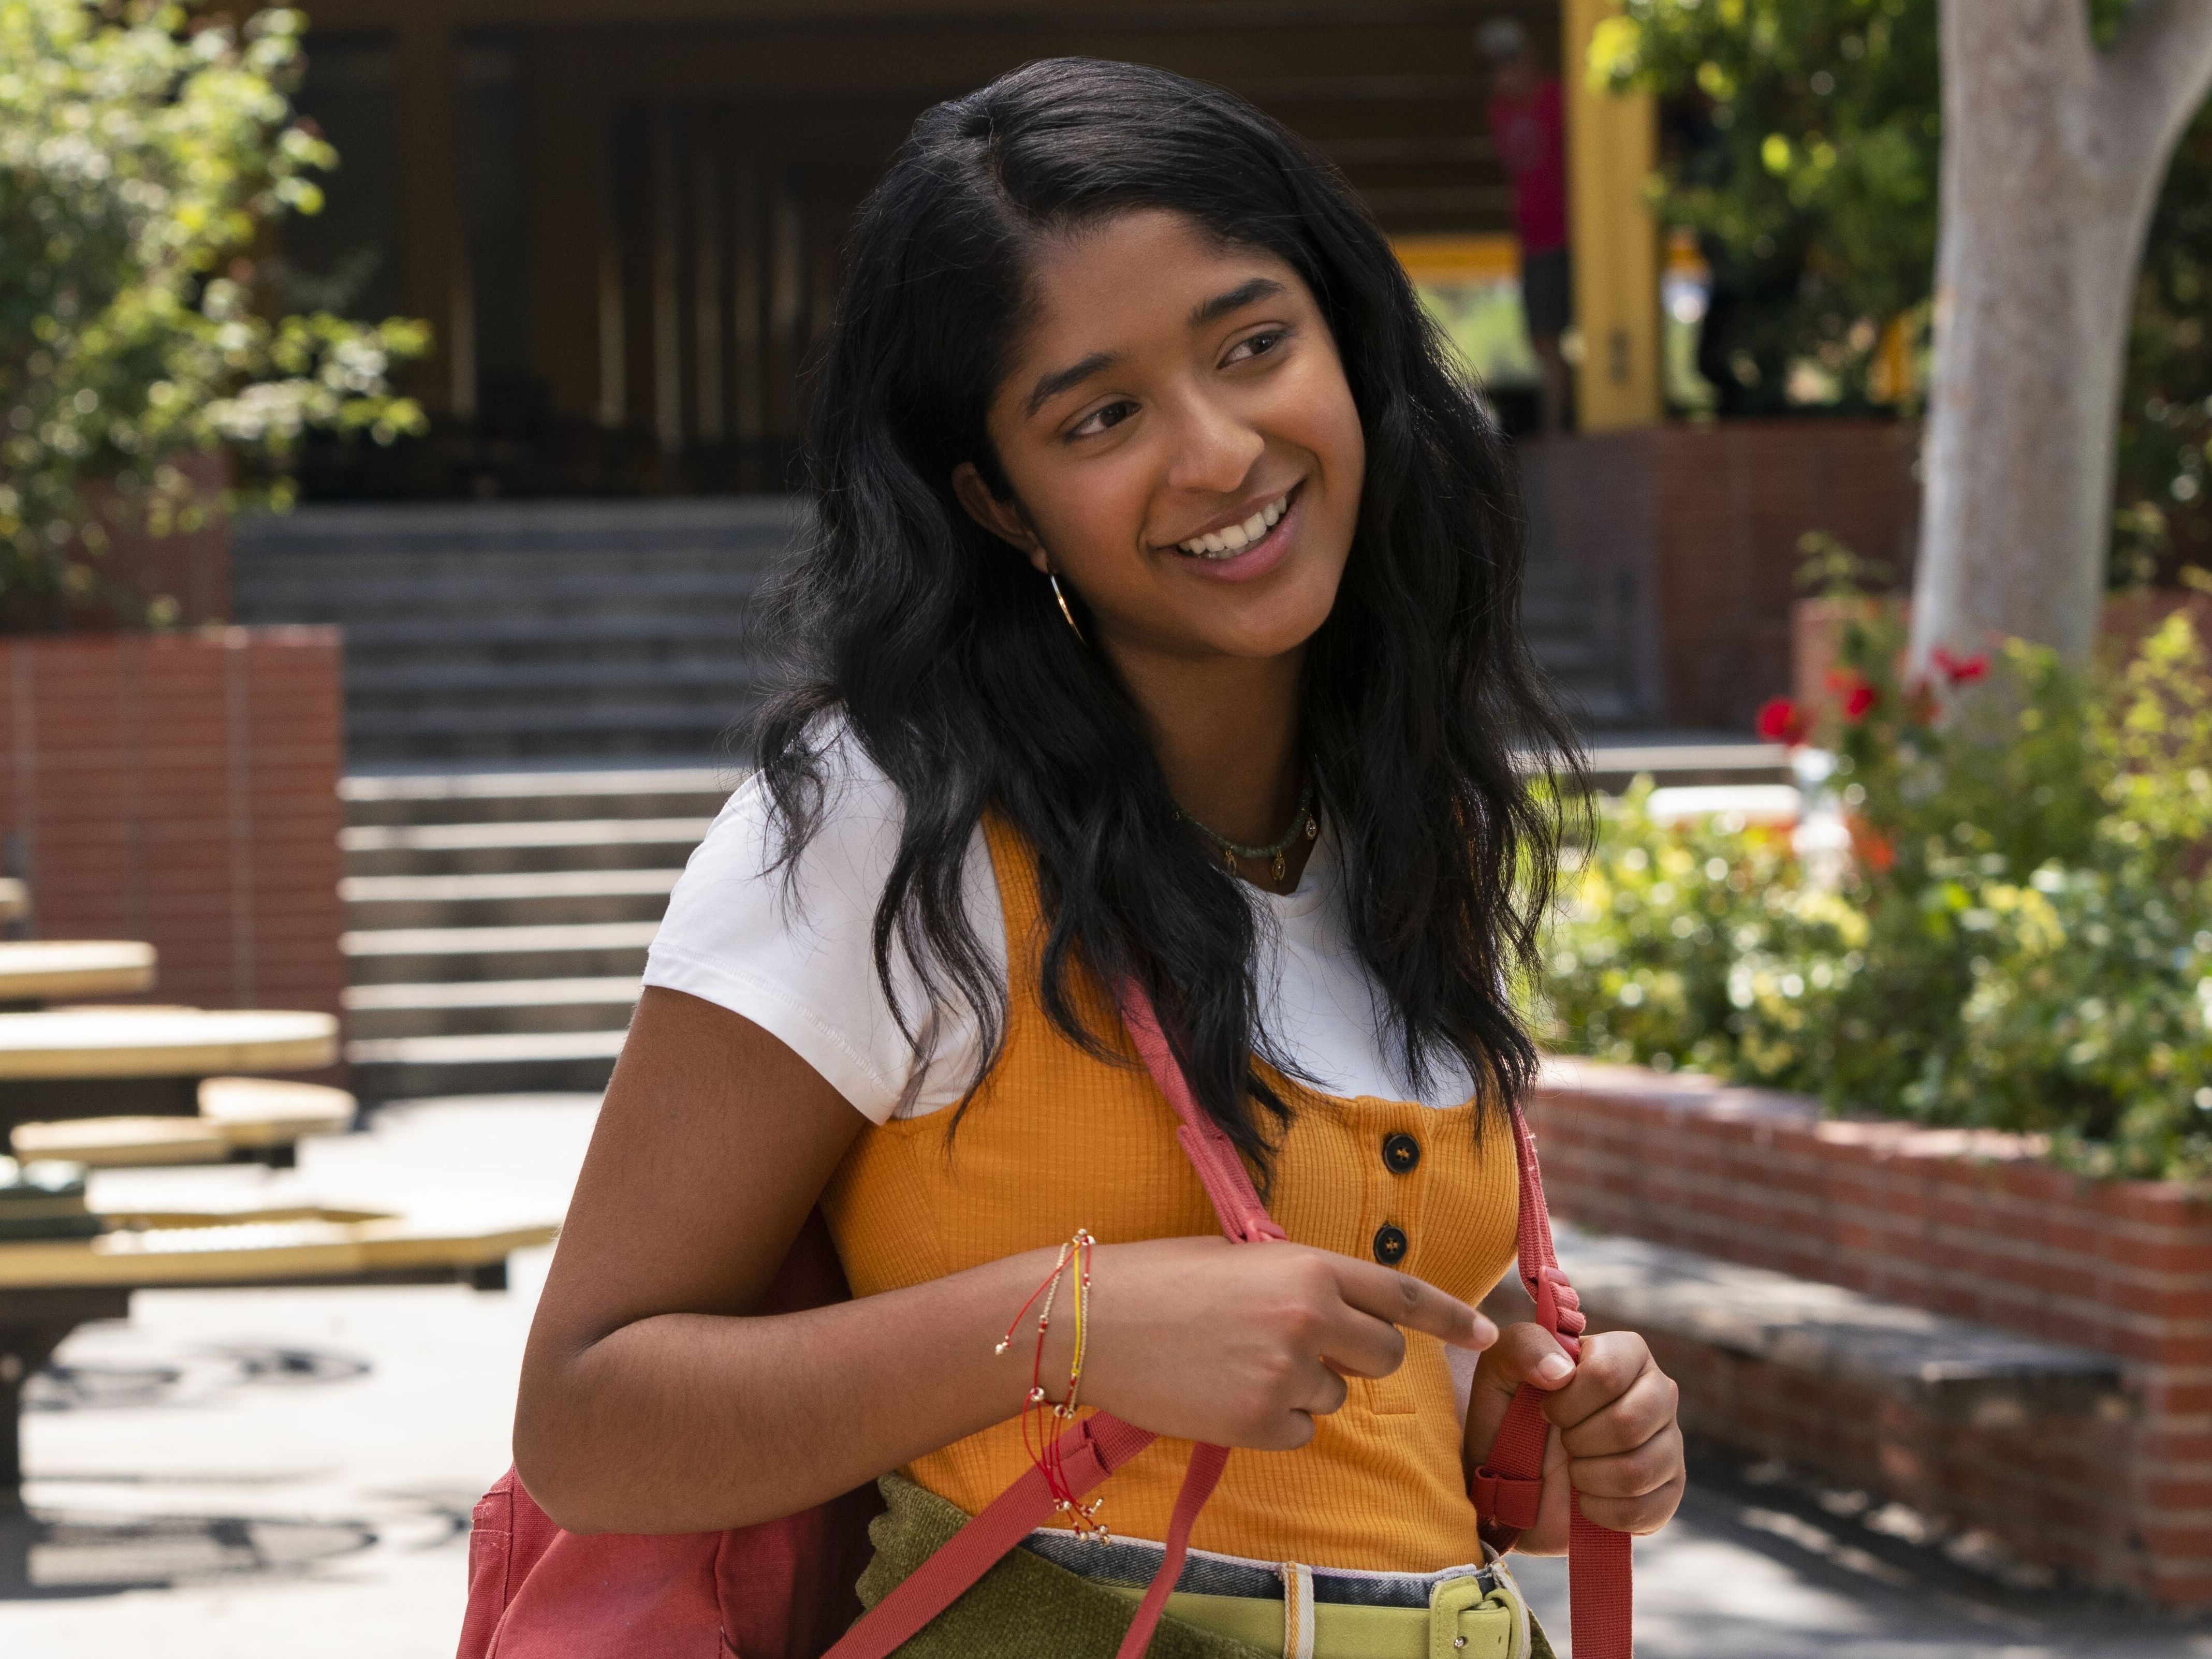 Mindy Kaling Brings A New Nerd To Tv And Finds She Was Not Alone